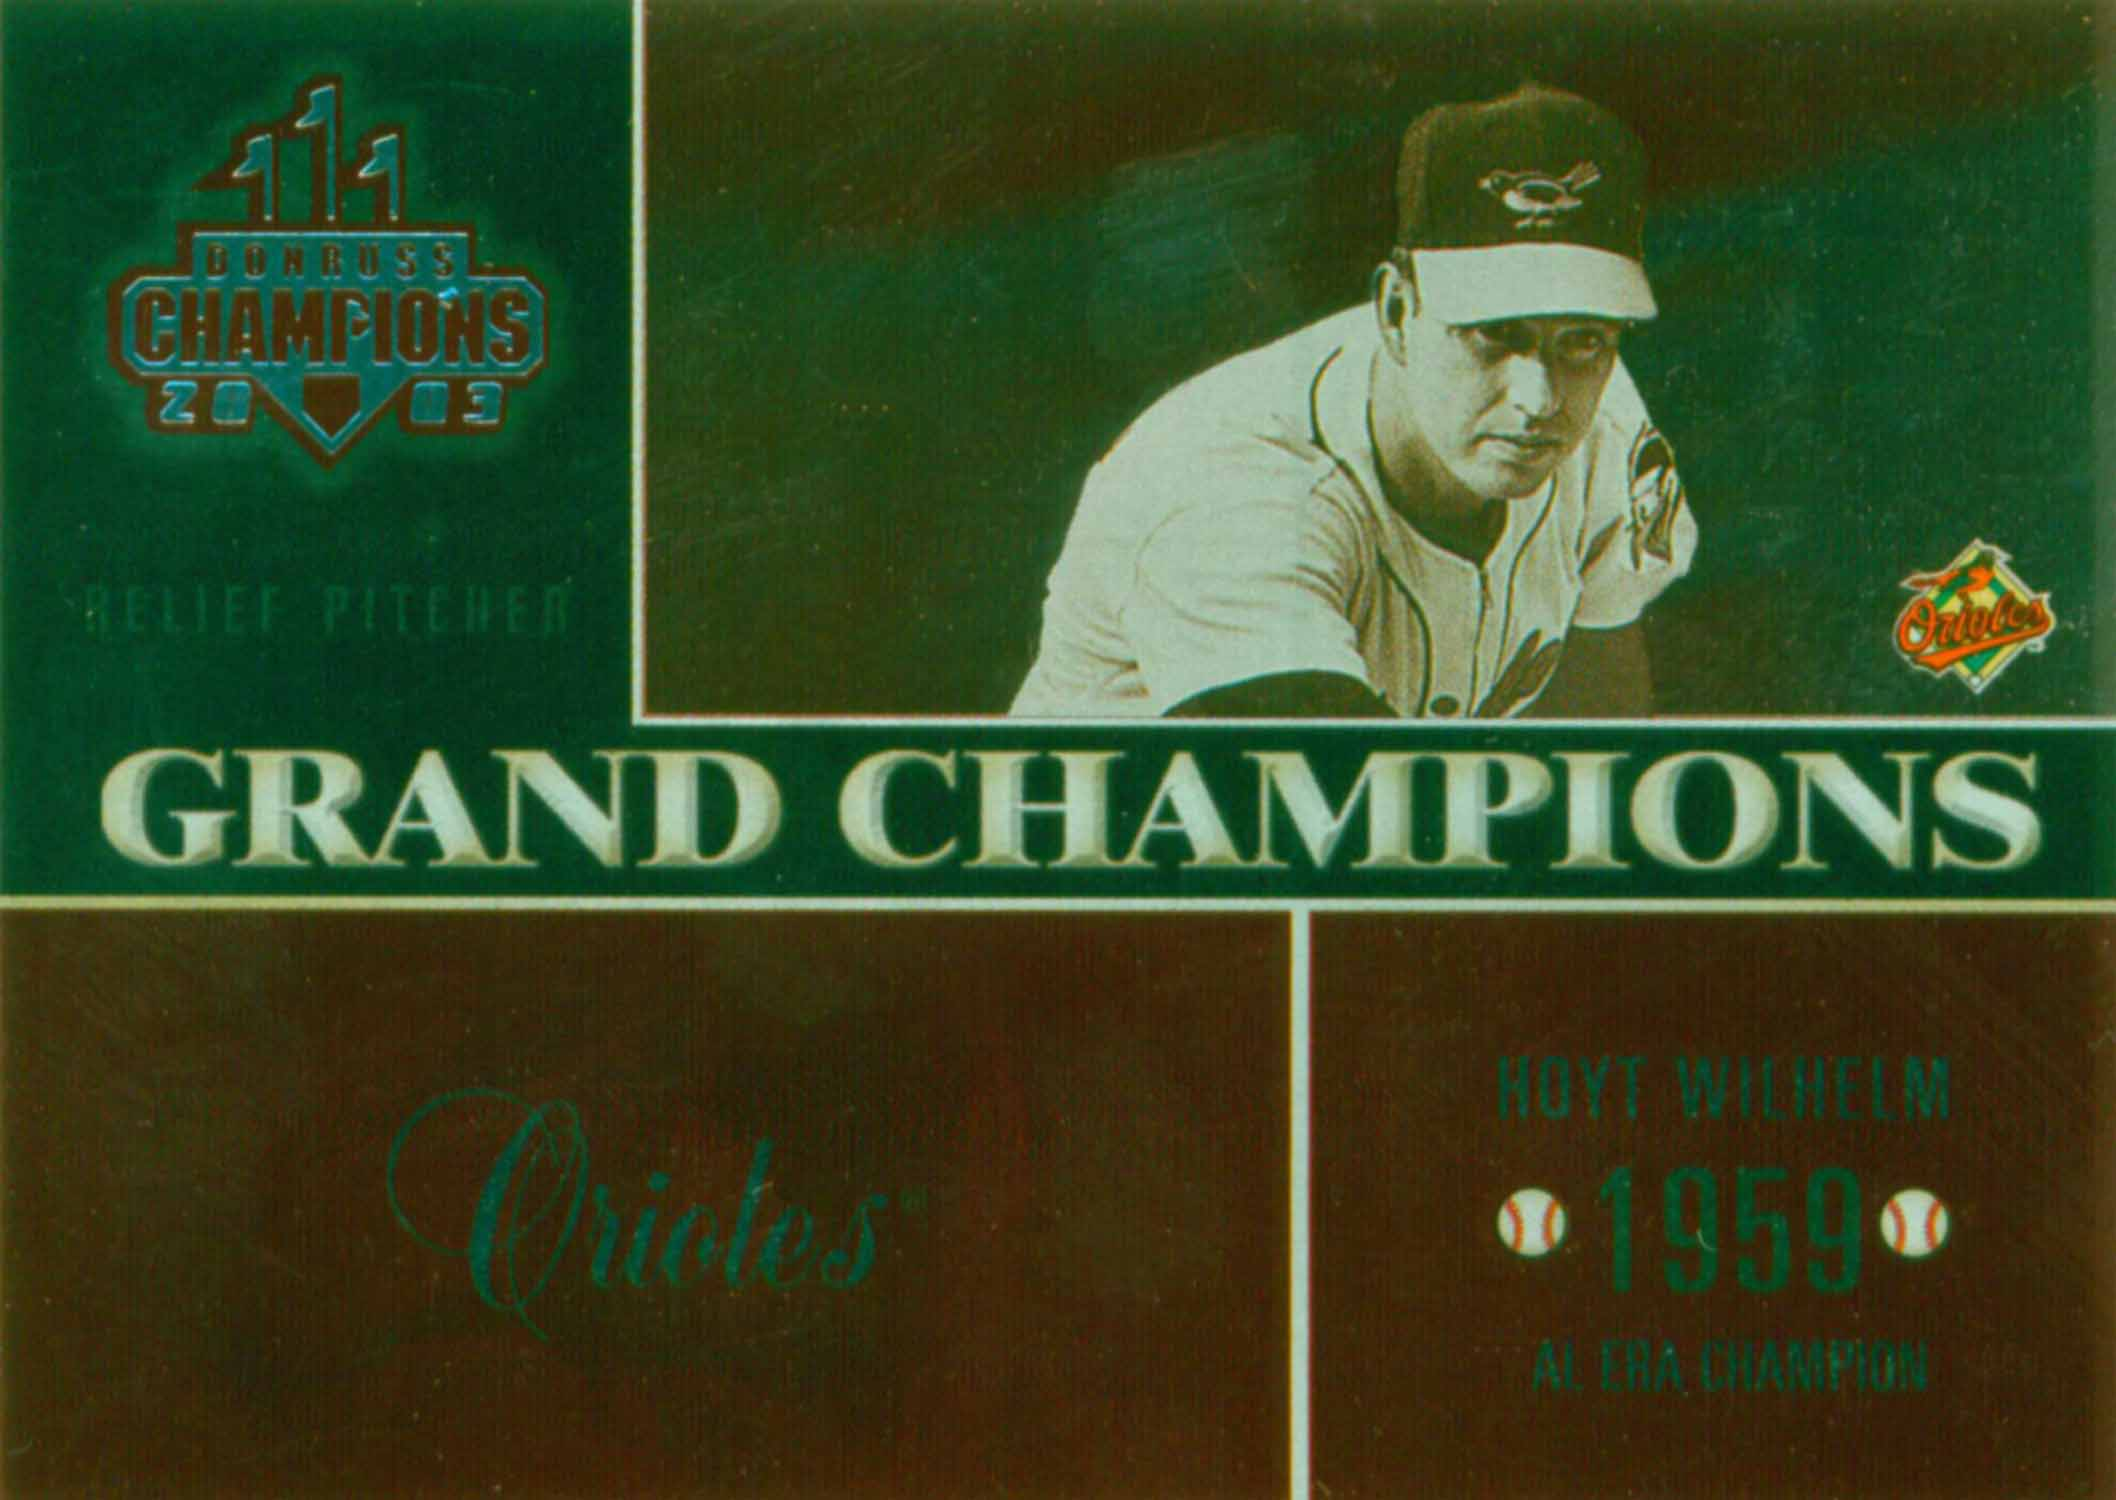 2003 Donruss Champions Grand Champions Metalized